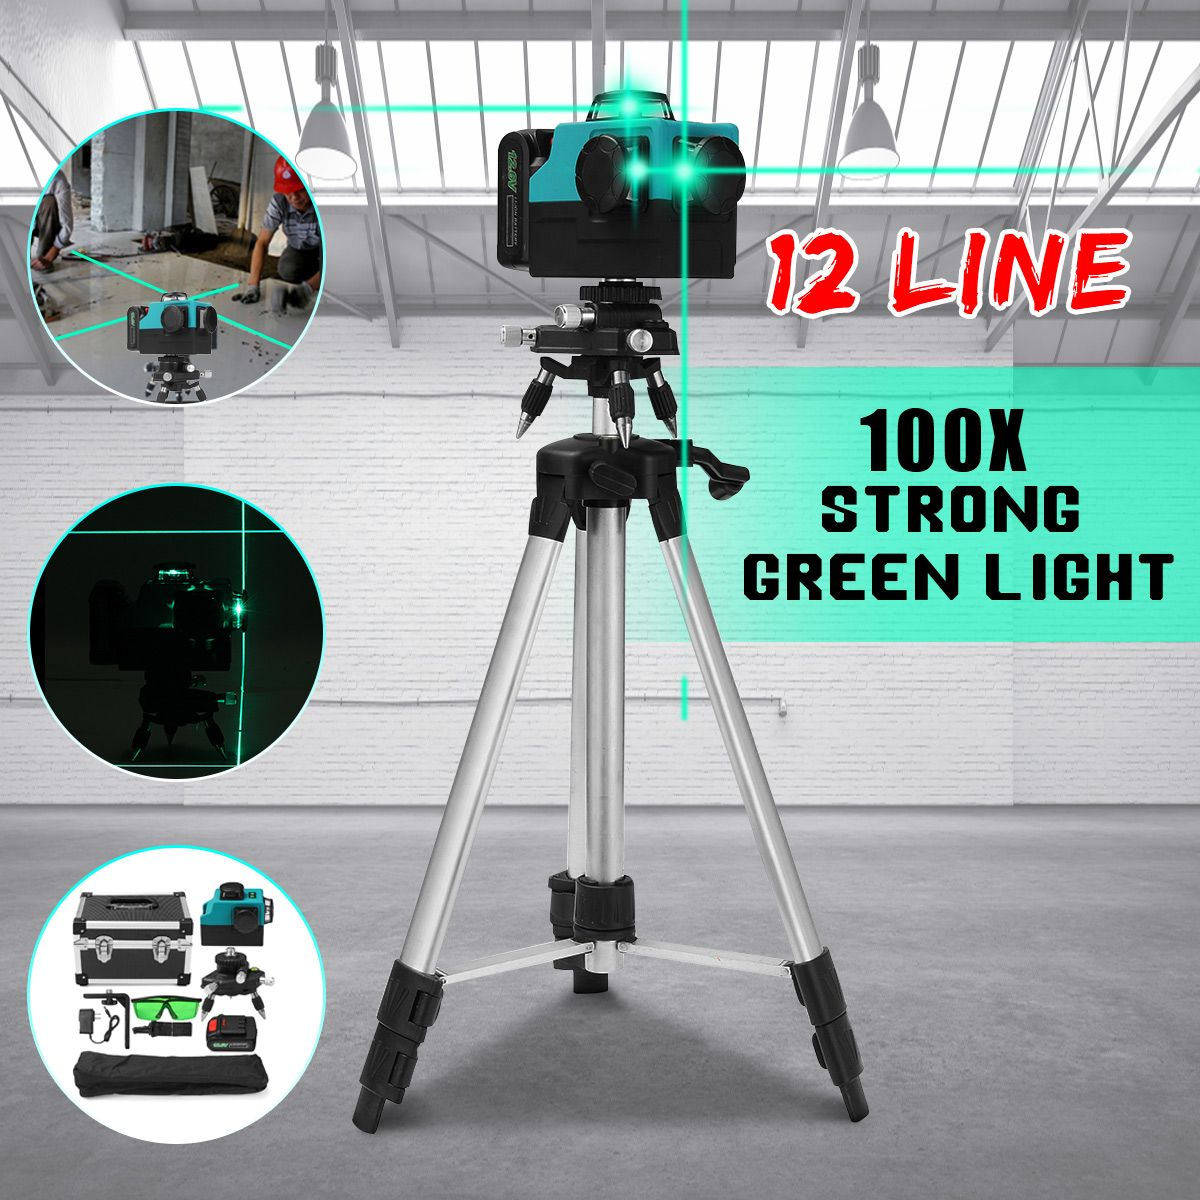 12 Line 100xStrong Green Light 3D Laser Level Measure 360 Vertical Horizontal Self-leveling Cross Laser Beam Line w/Tripod Stand